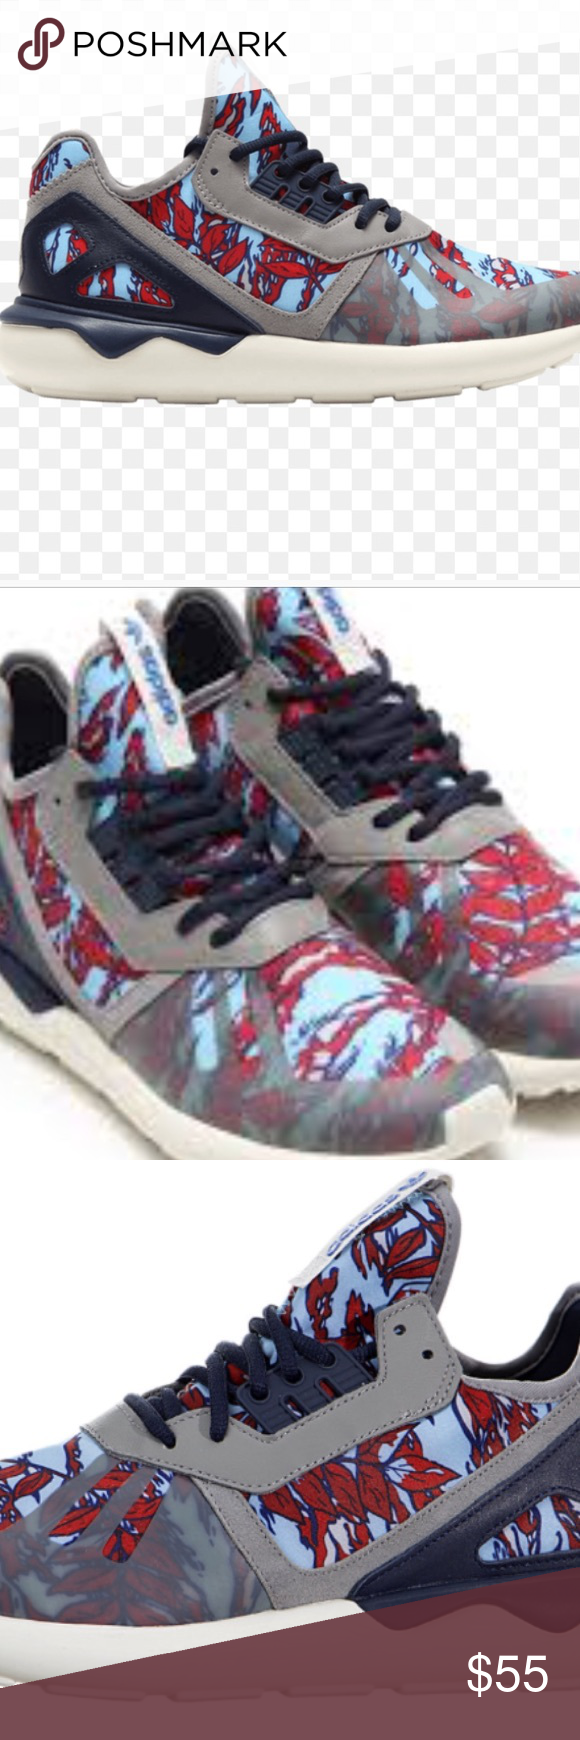 812144d82f82 Adidas Tubular Runner Men s B35637 Size 13 Brand New! Size 13 Seaweed Camo  adidas Shoes